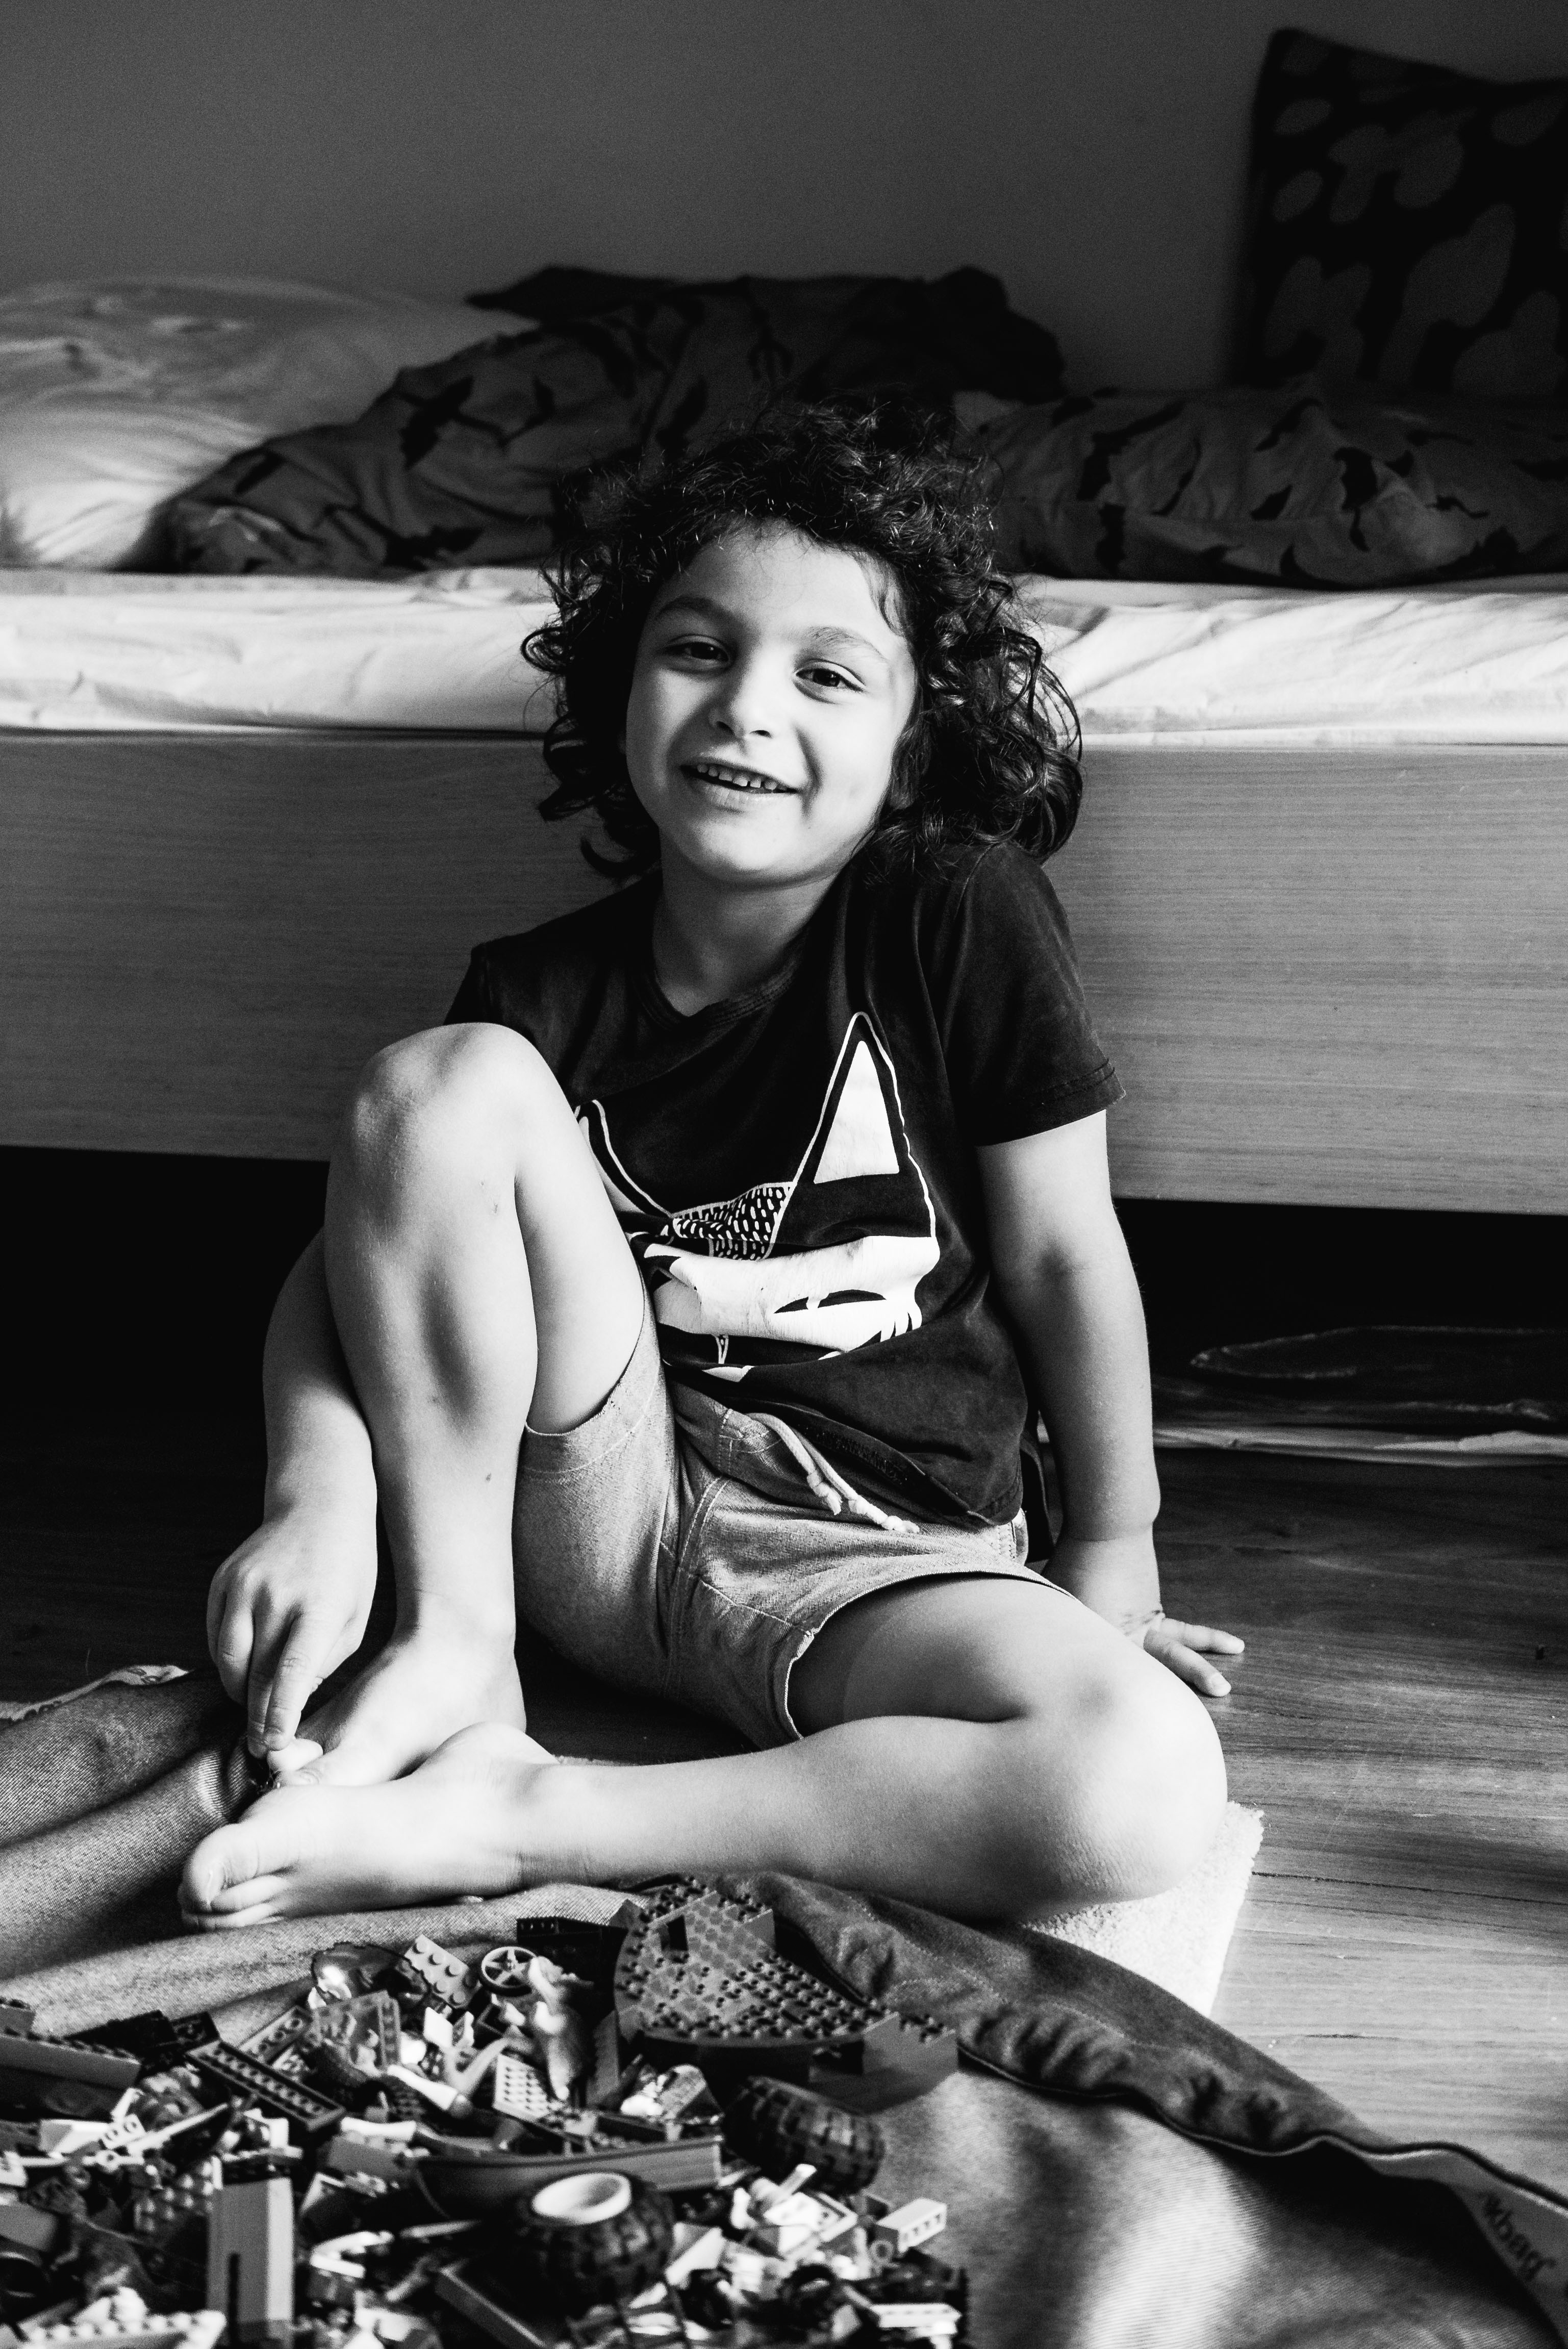 photograph of a boy smiling and sitting by his bed in Carlton North, Melbourne, Australia